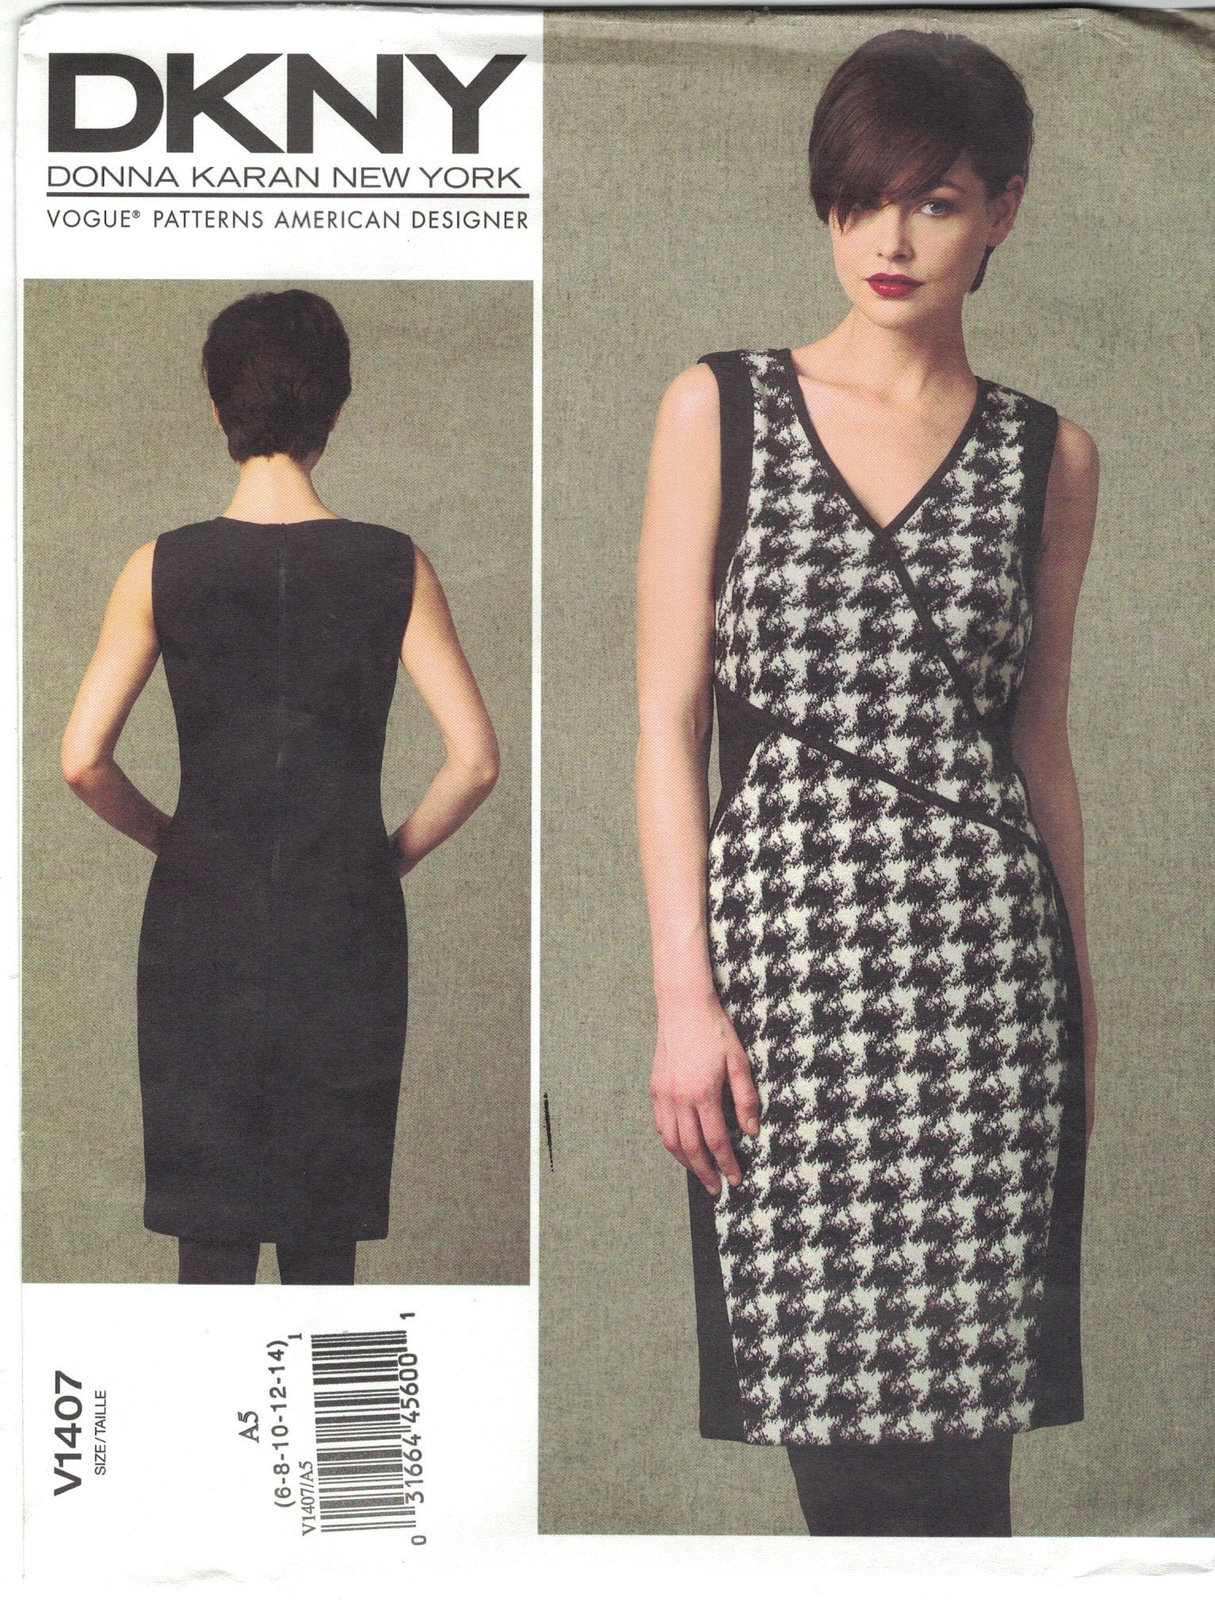 Primary image for Vogue 1407 DKNY Donna Karan Mock Wrap Sleeveless Dress Pattern Uncut Choose Size